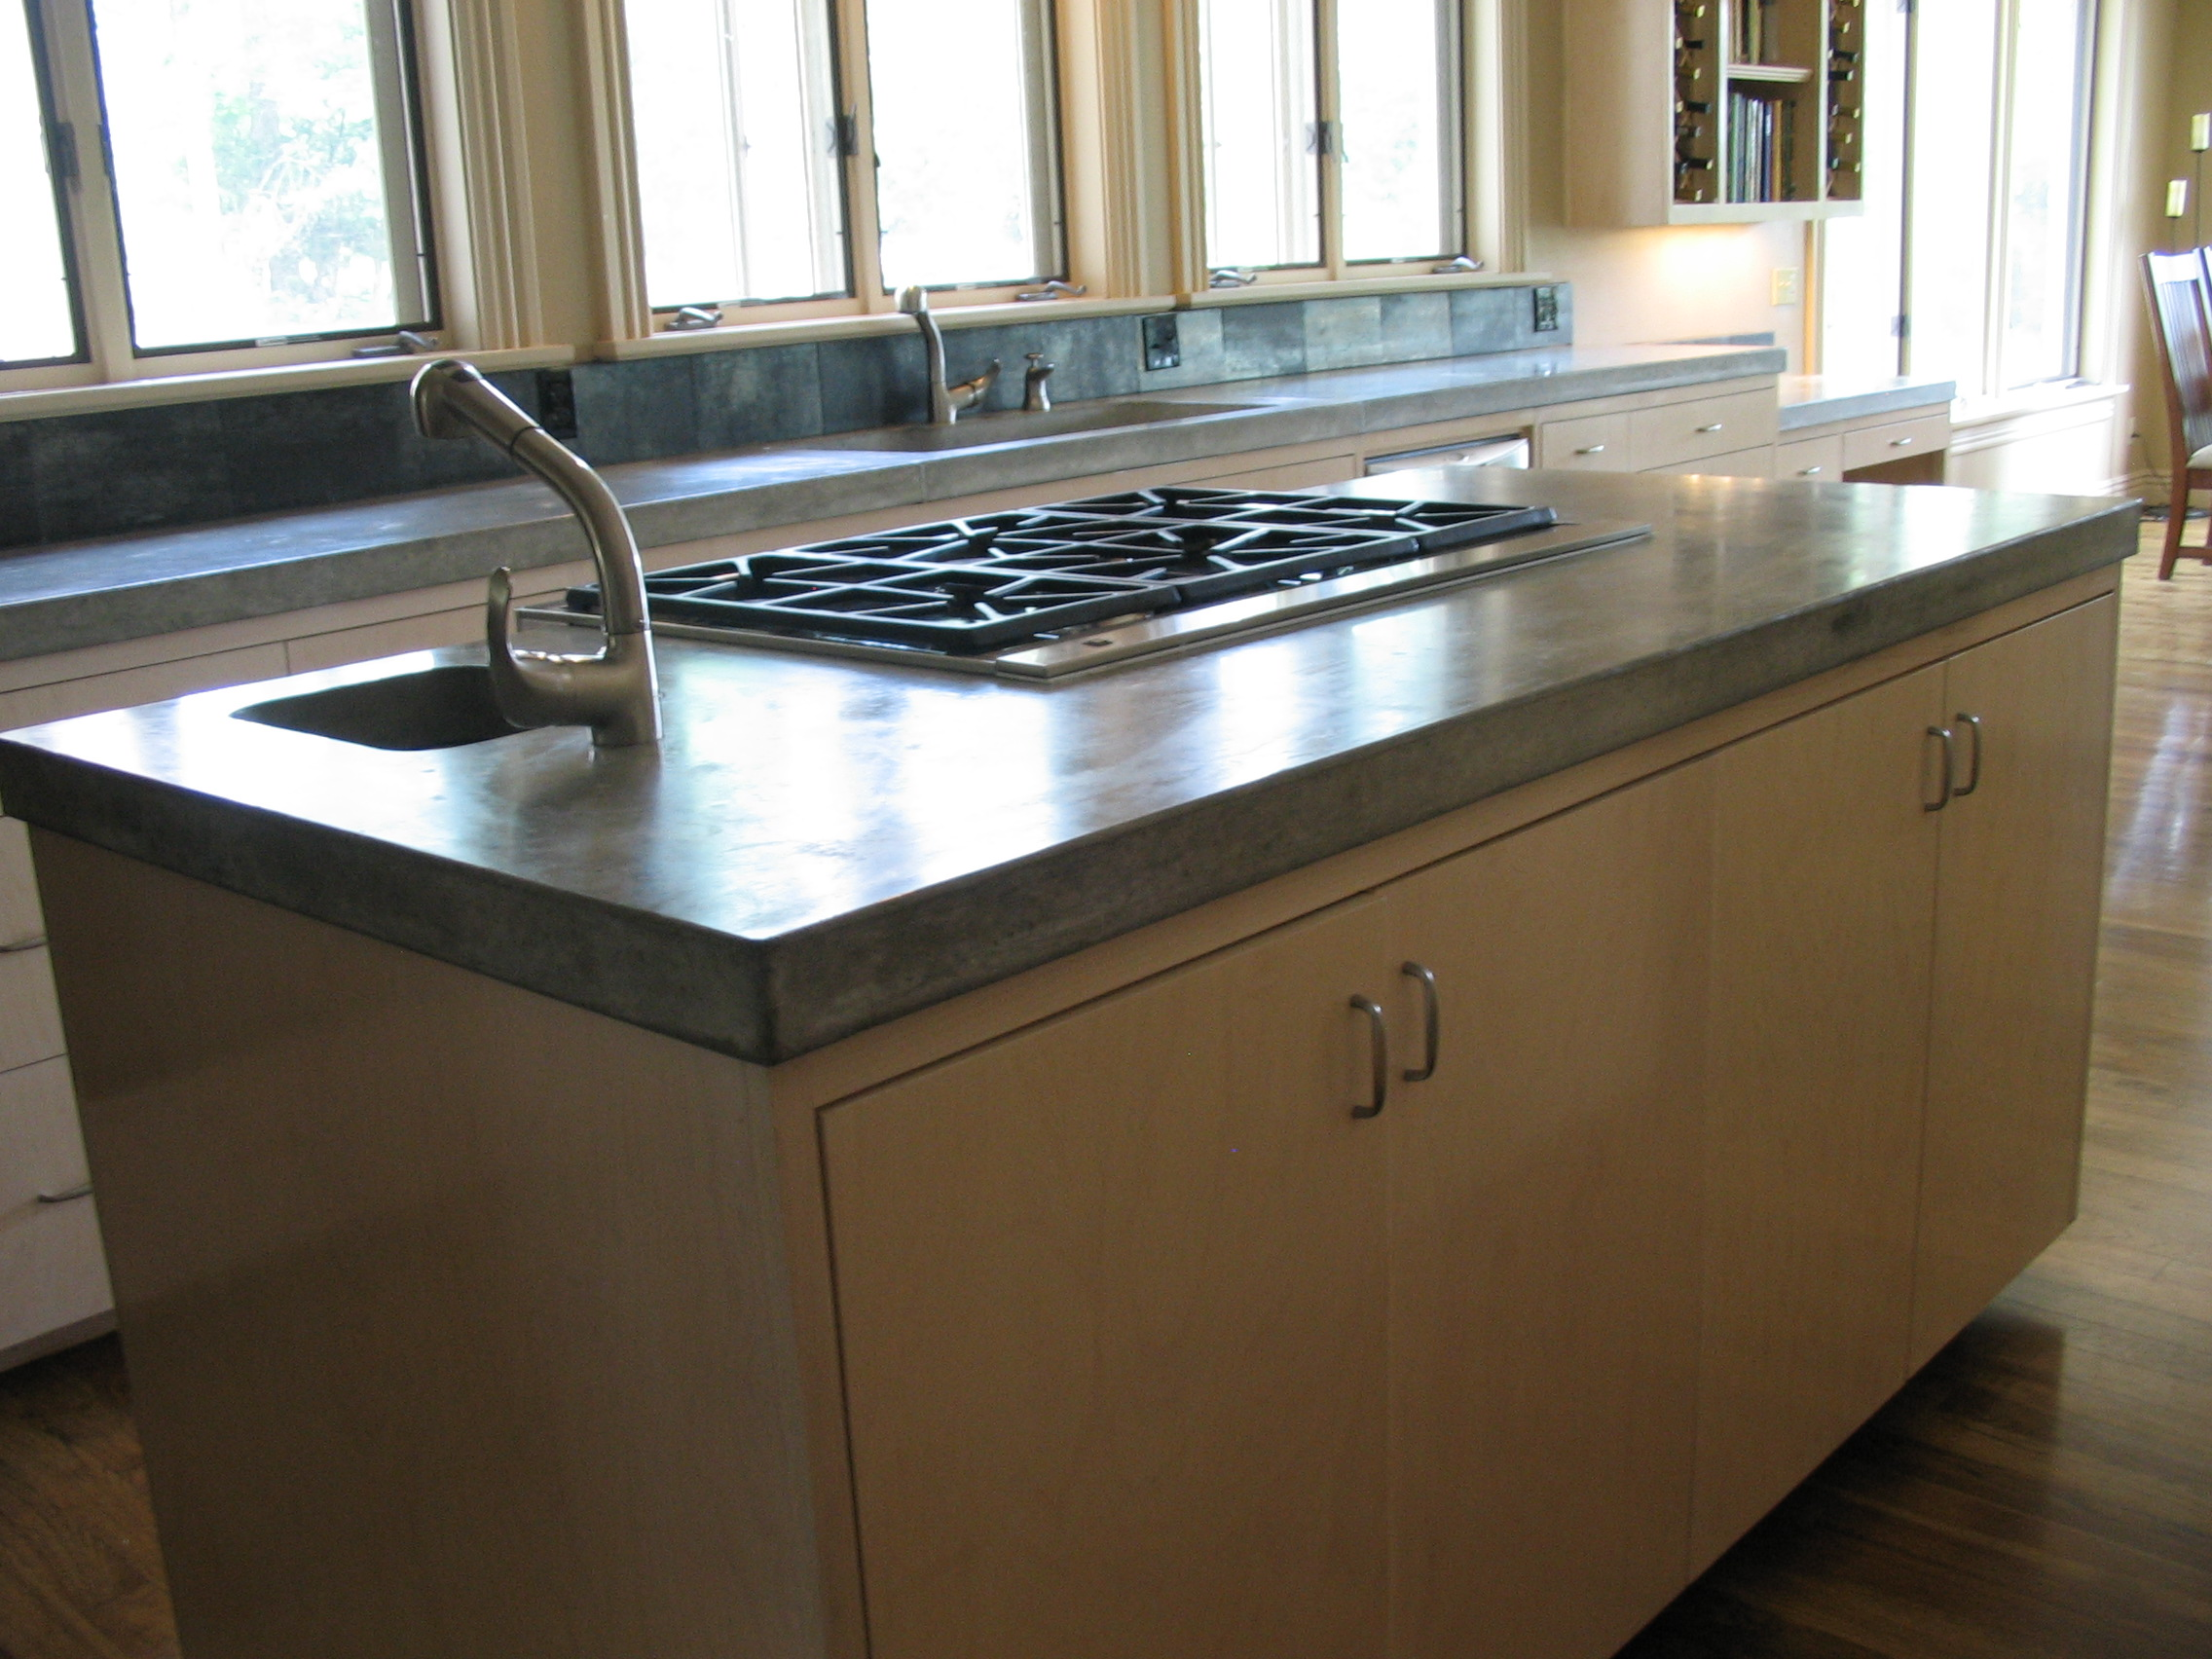 Concrete Countertop Reinforcement Concrete Countertops For The Kitchen Concrete Creations Nwa